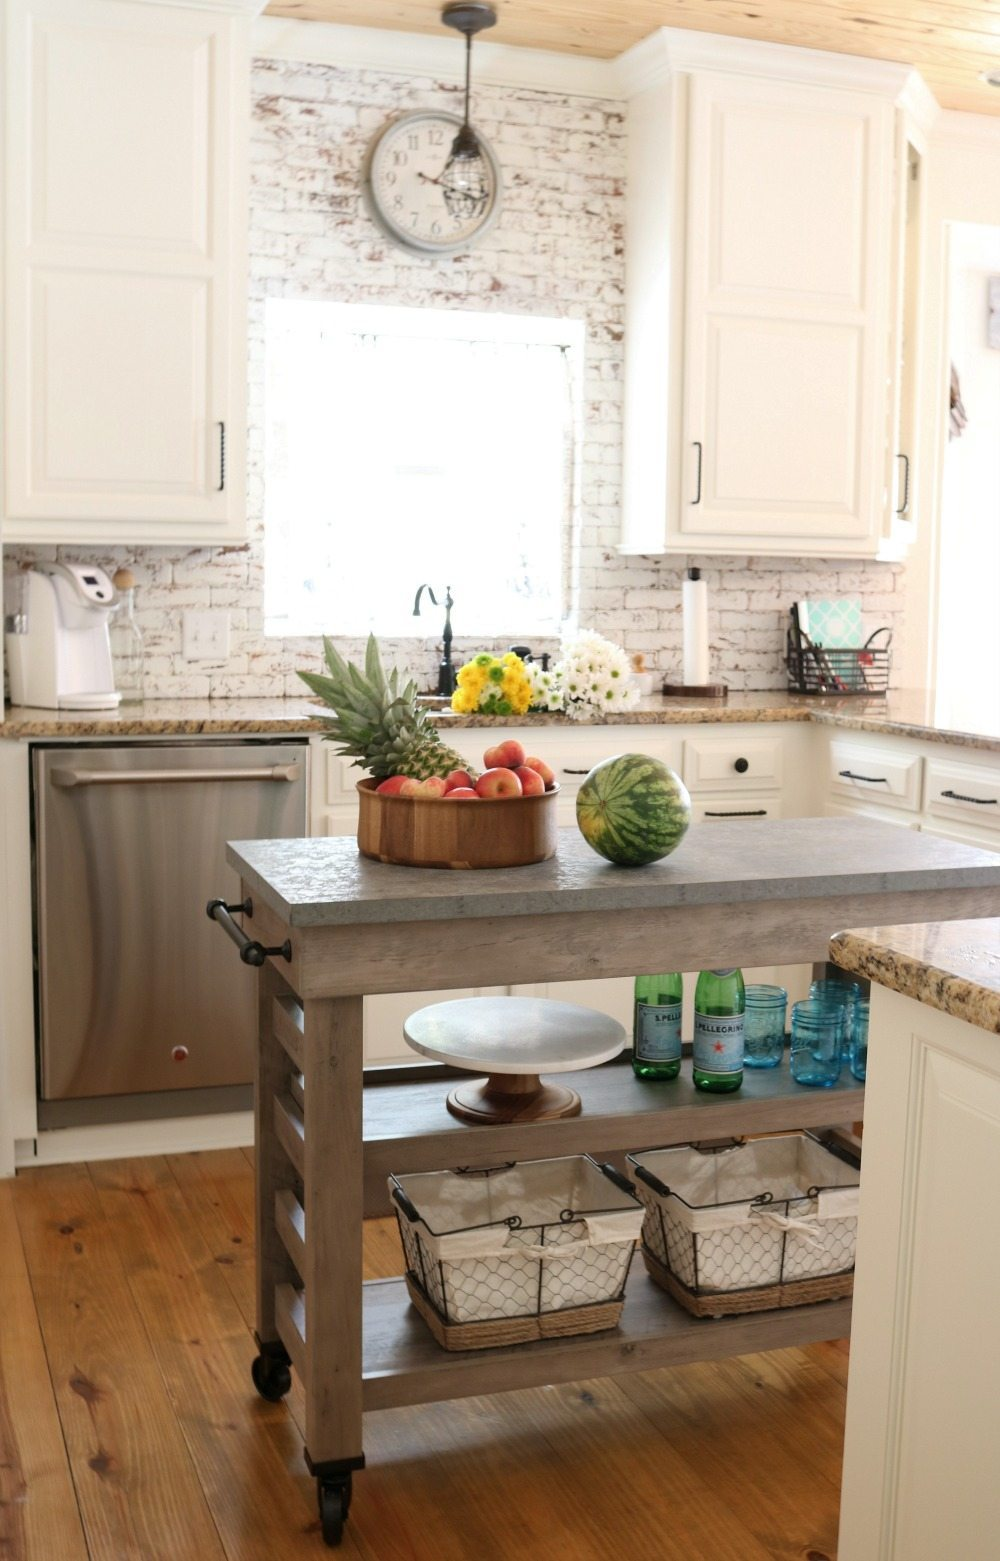 Plenty of storage in this Light and bright country kitchen